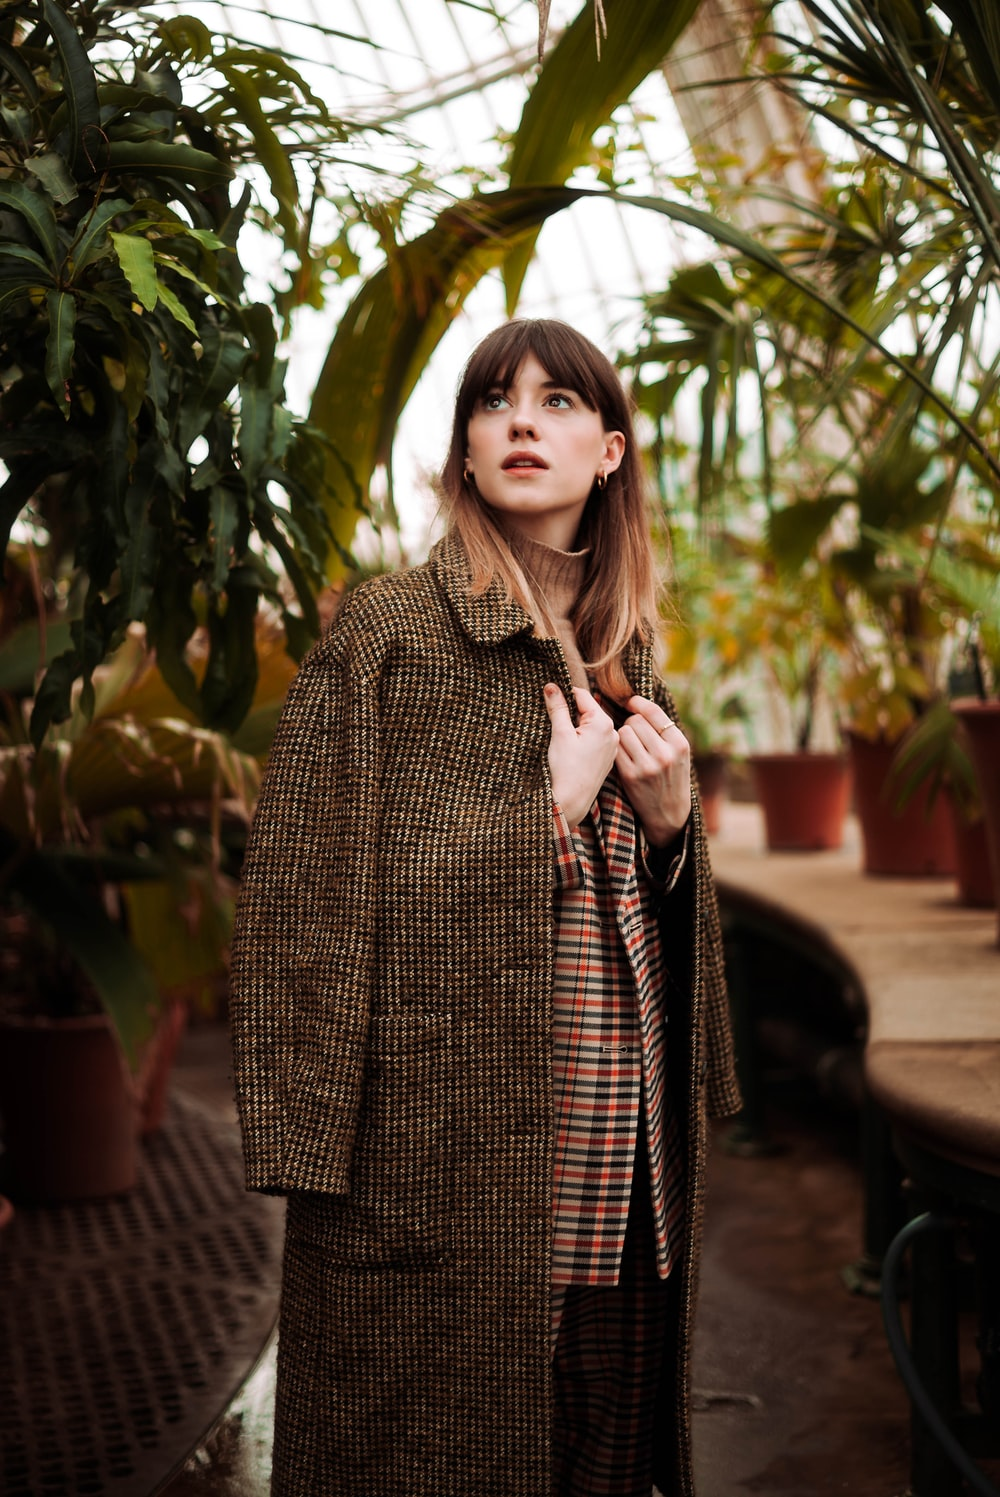 woman wearing brown coat near plants